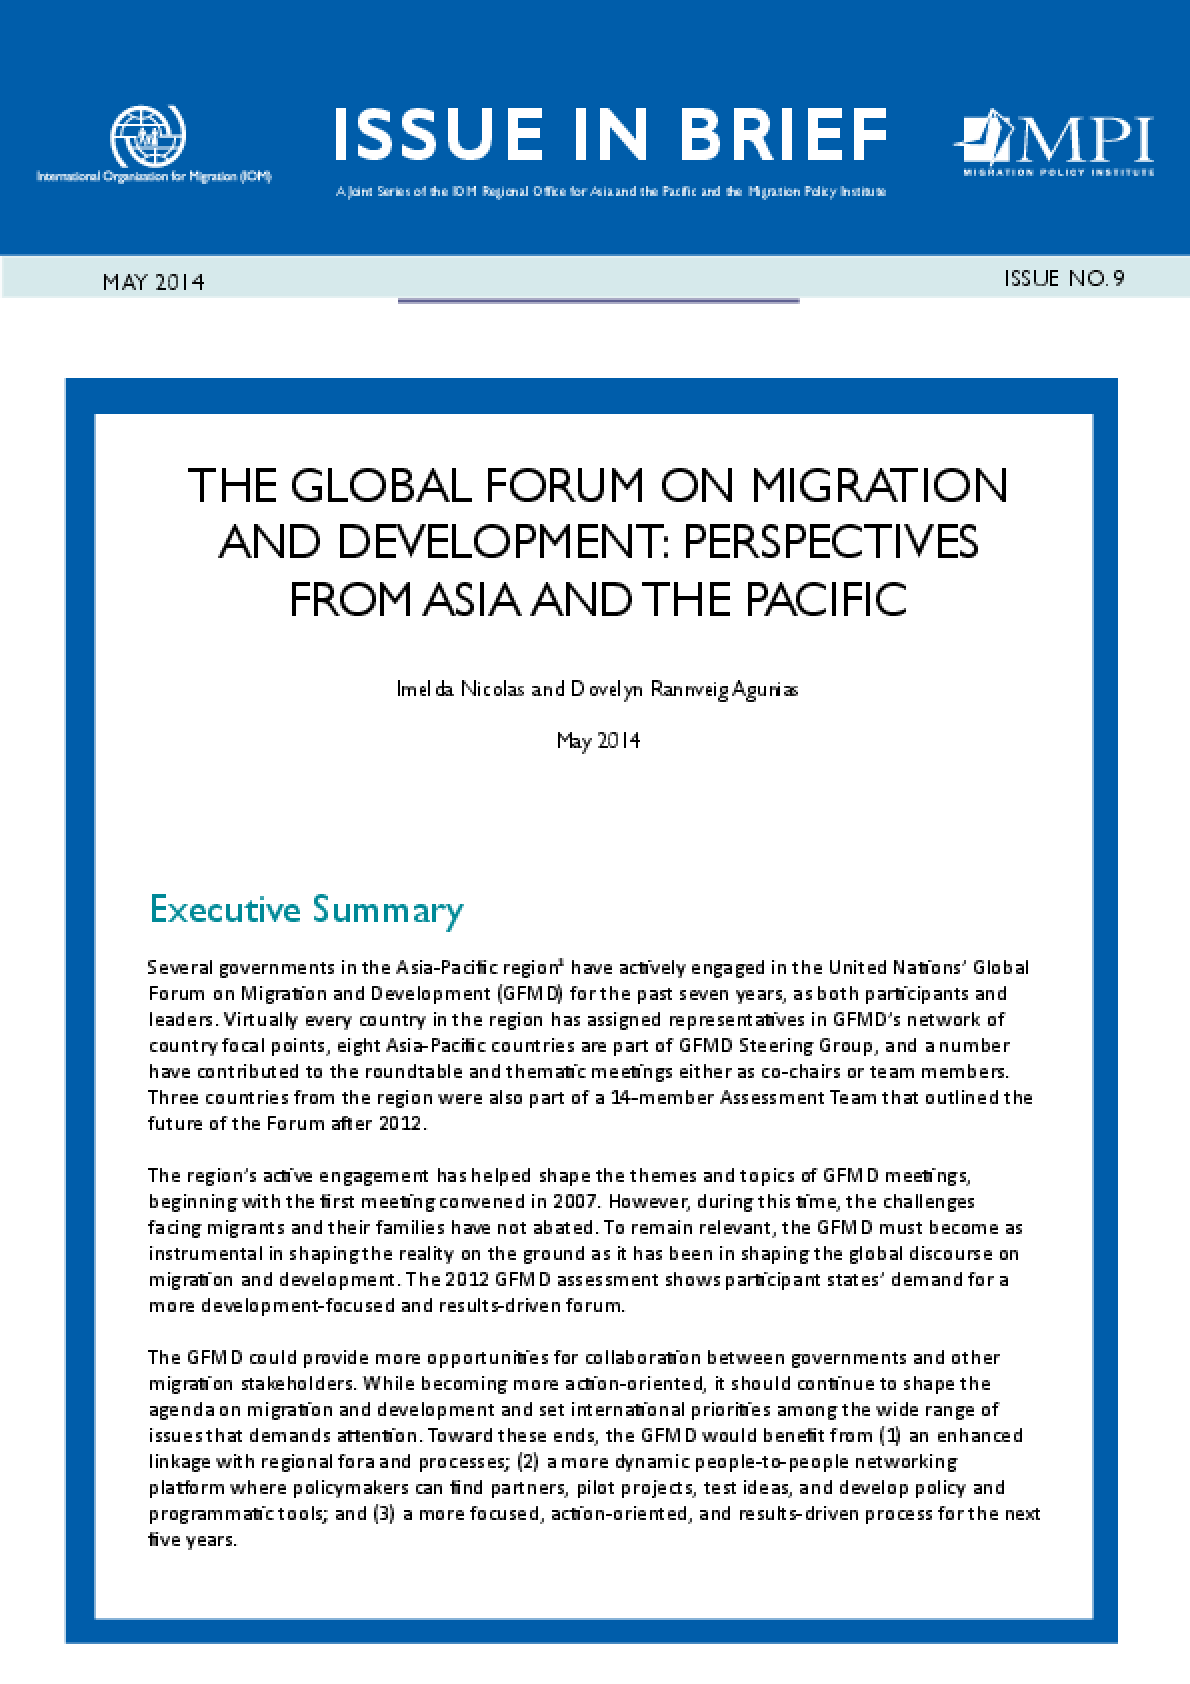 The Global Forum on Migration and Development: Perspectives from Asia and the Pacific